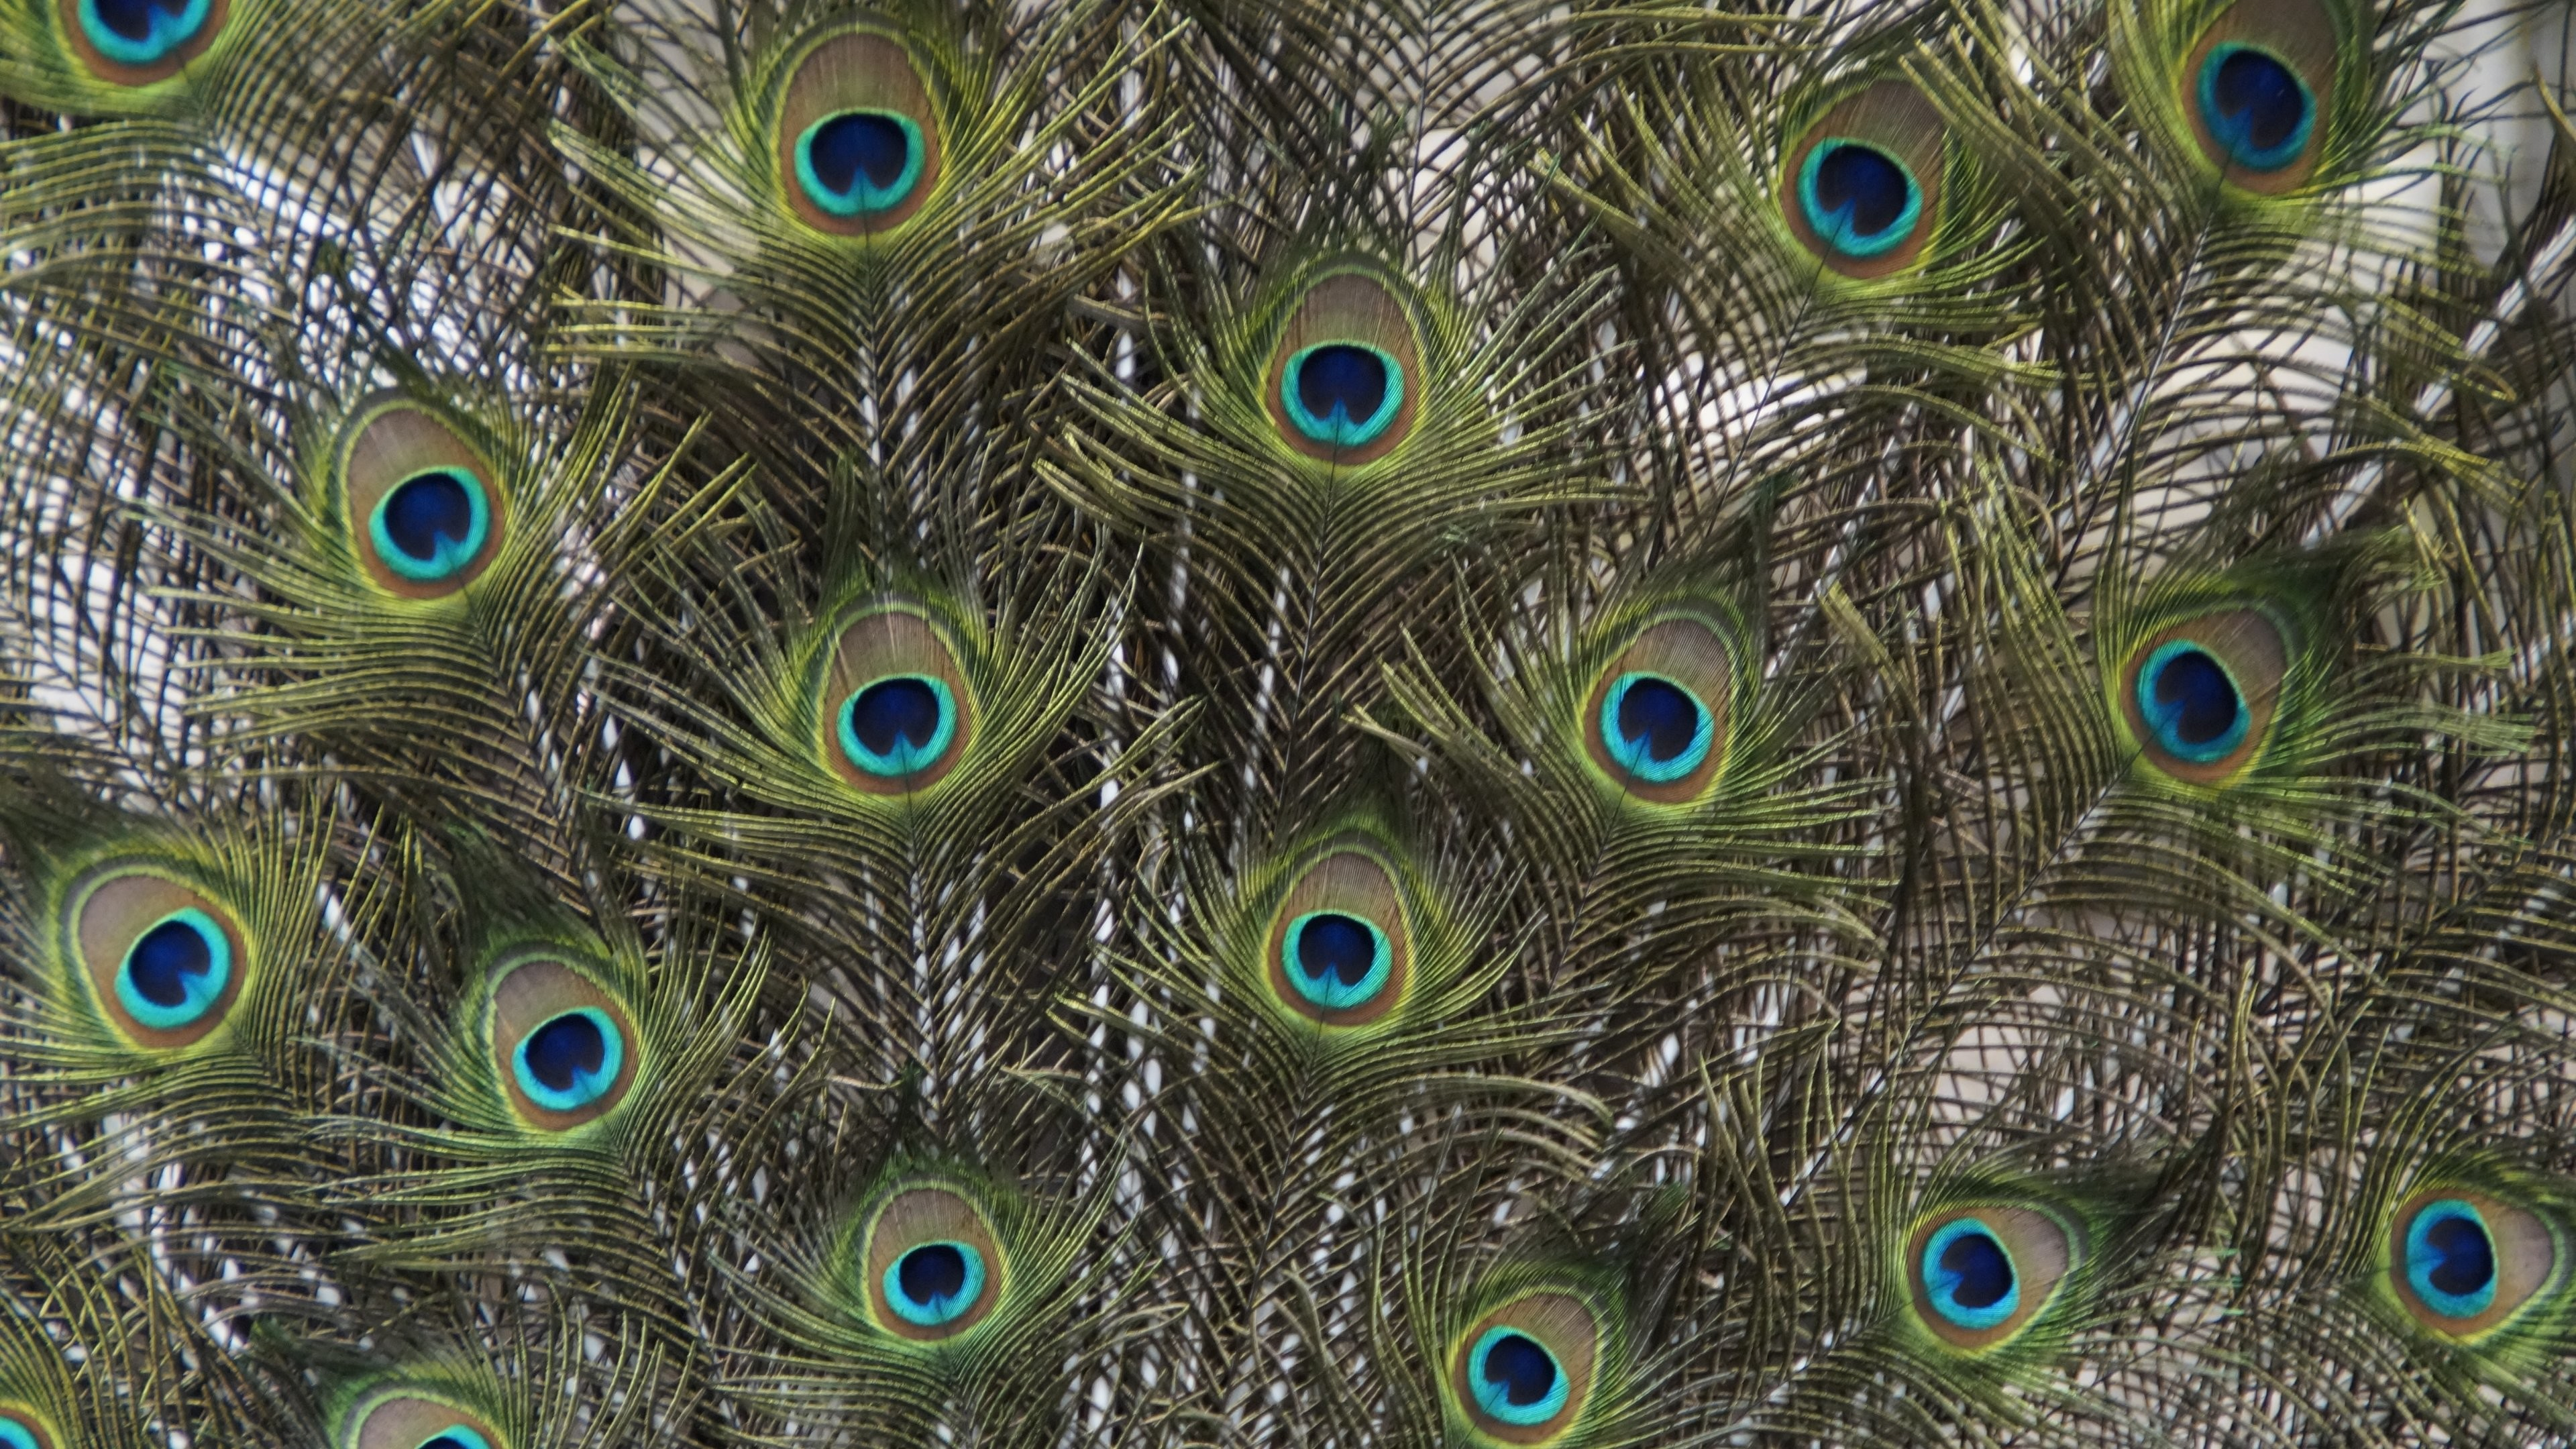 Peacock Feather Wallpaper (59+ Images